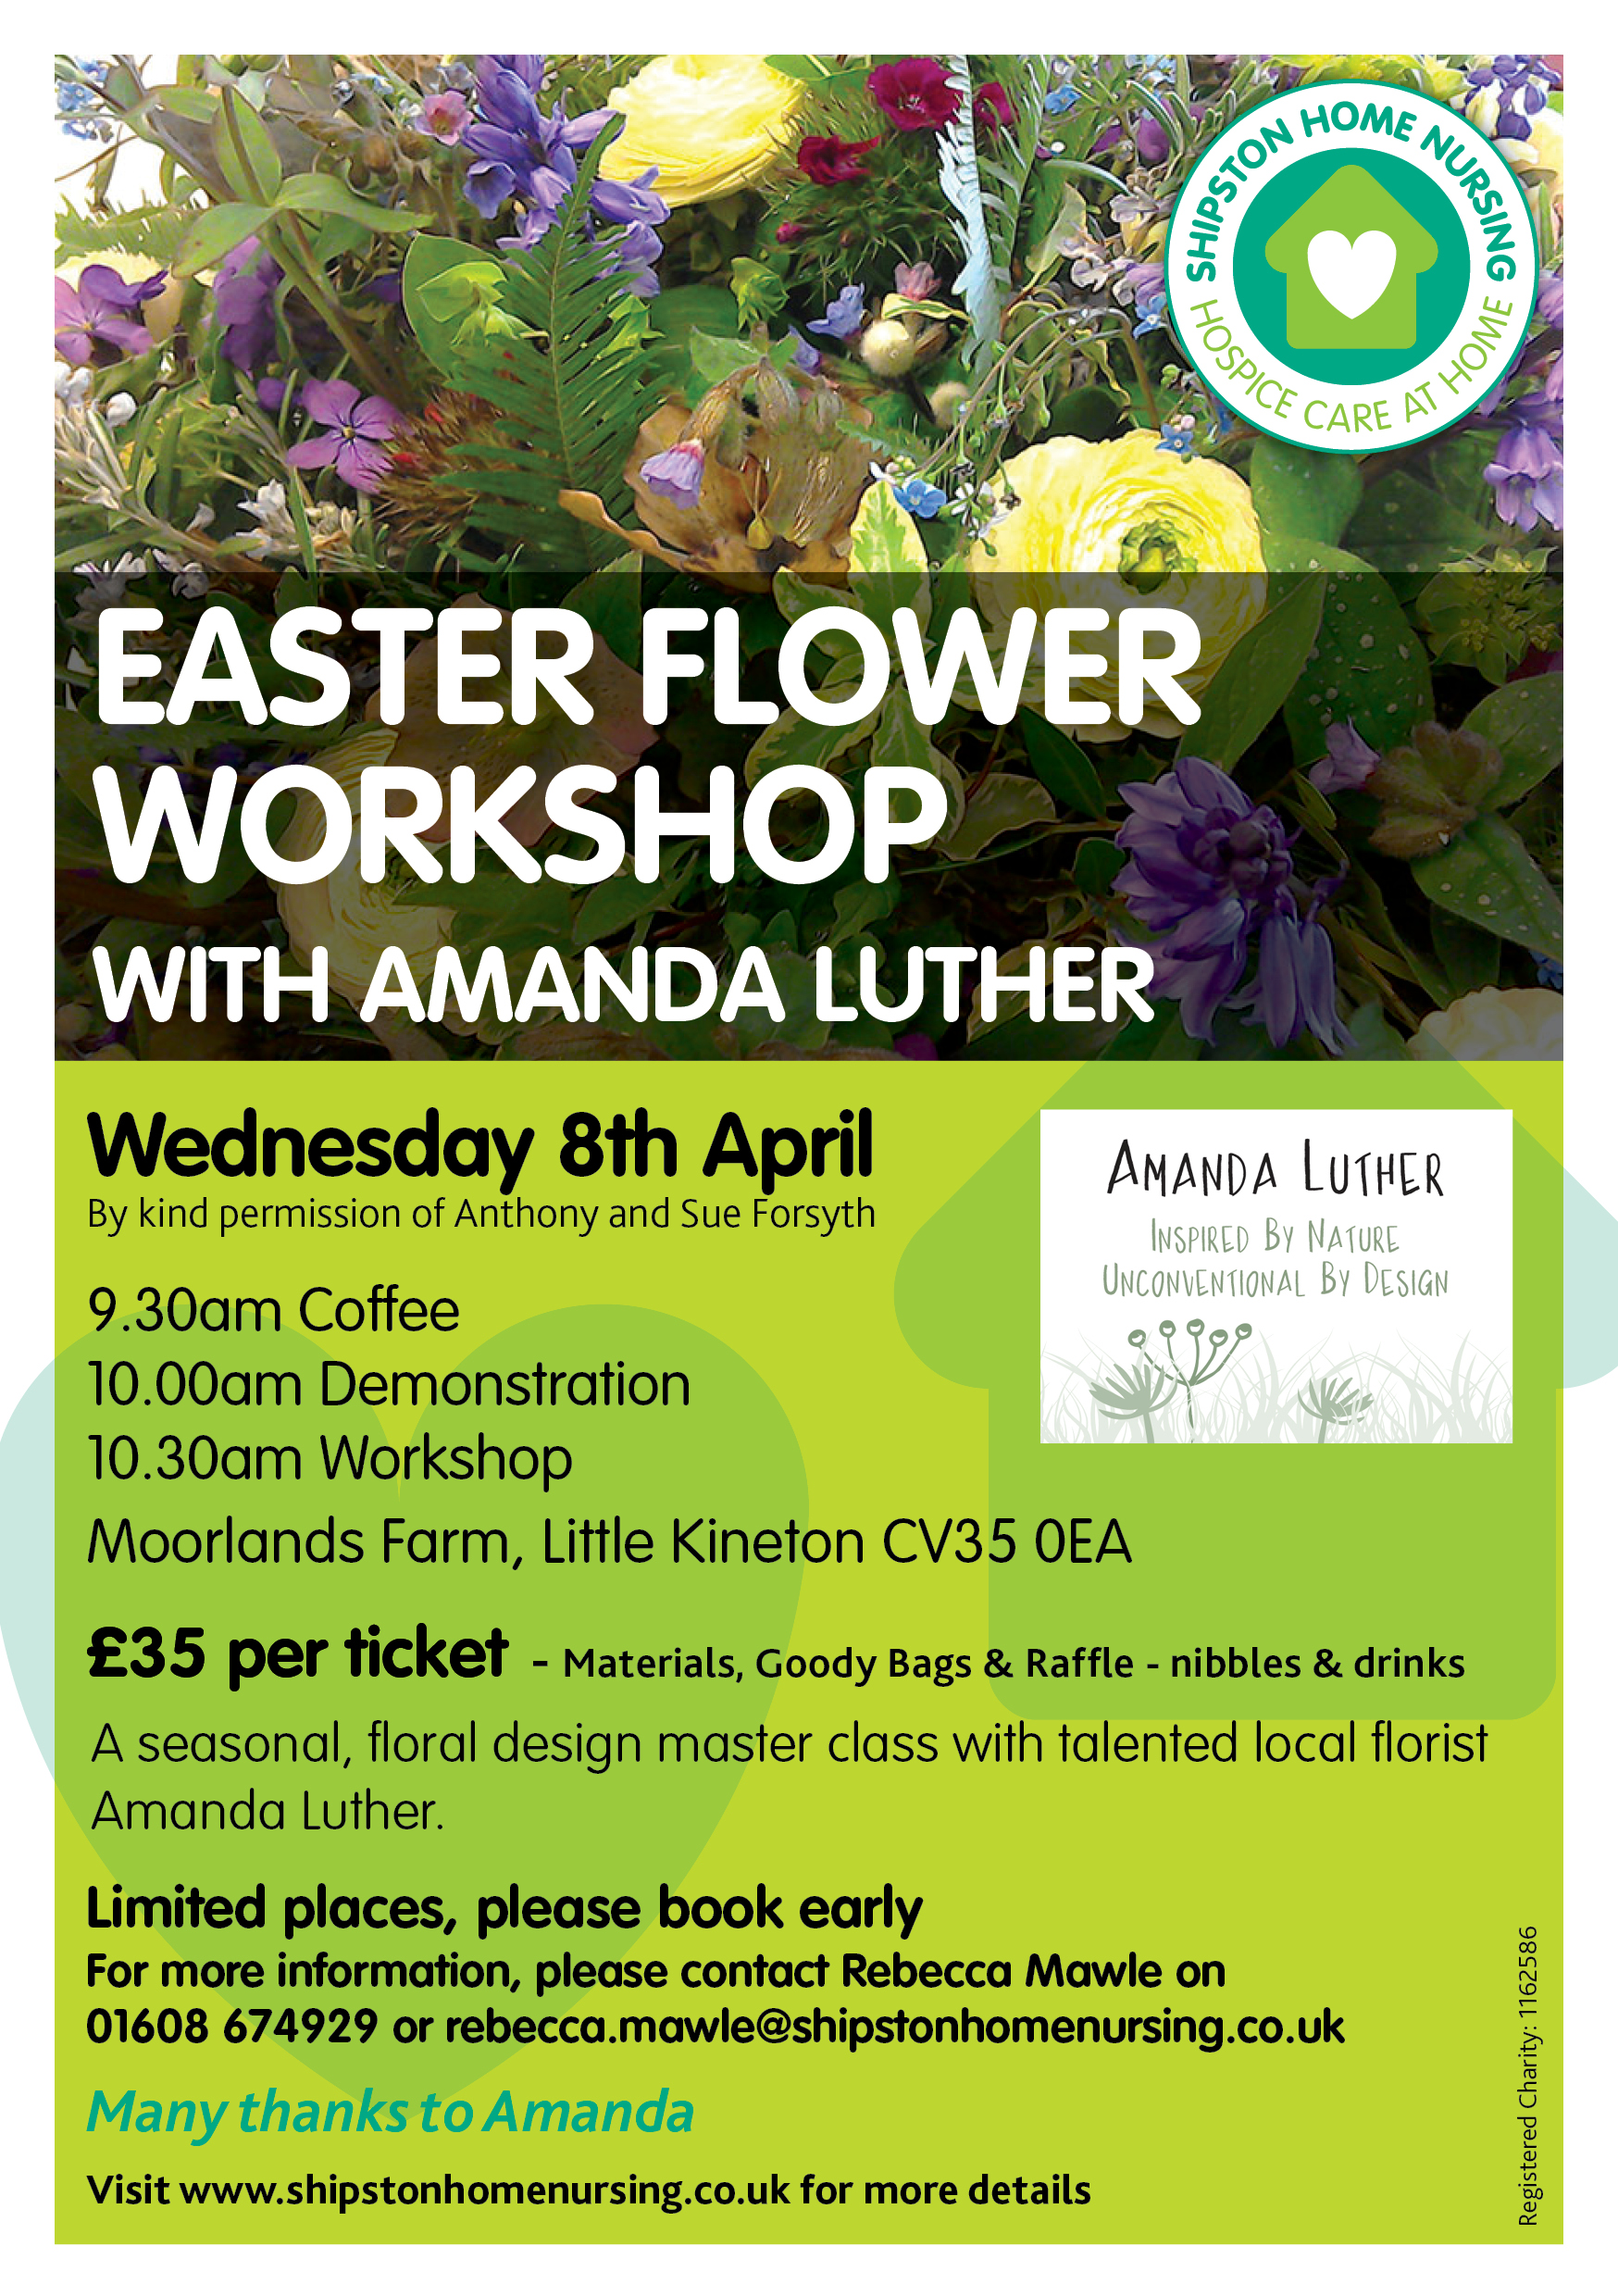 Easter Flower Workshop with Amanda Luther supprting Shipston Home Nursing